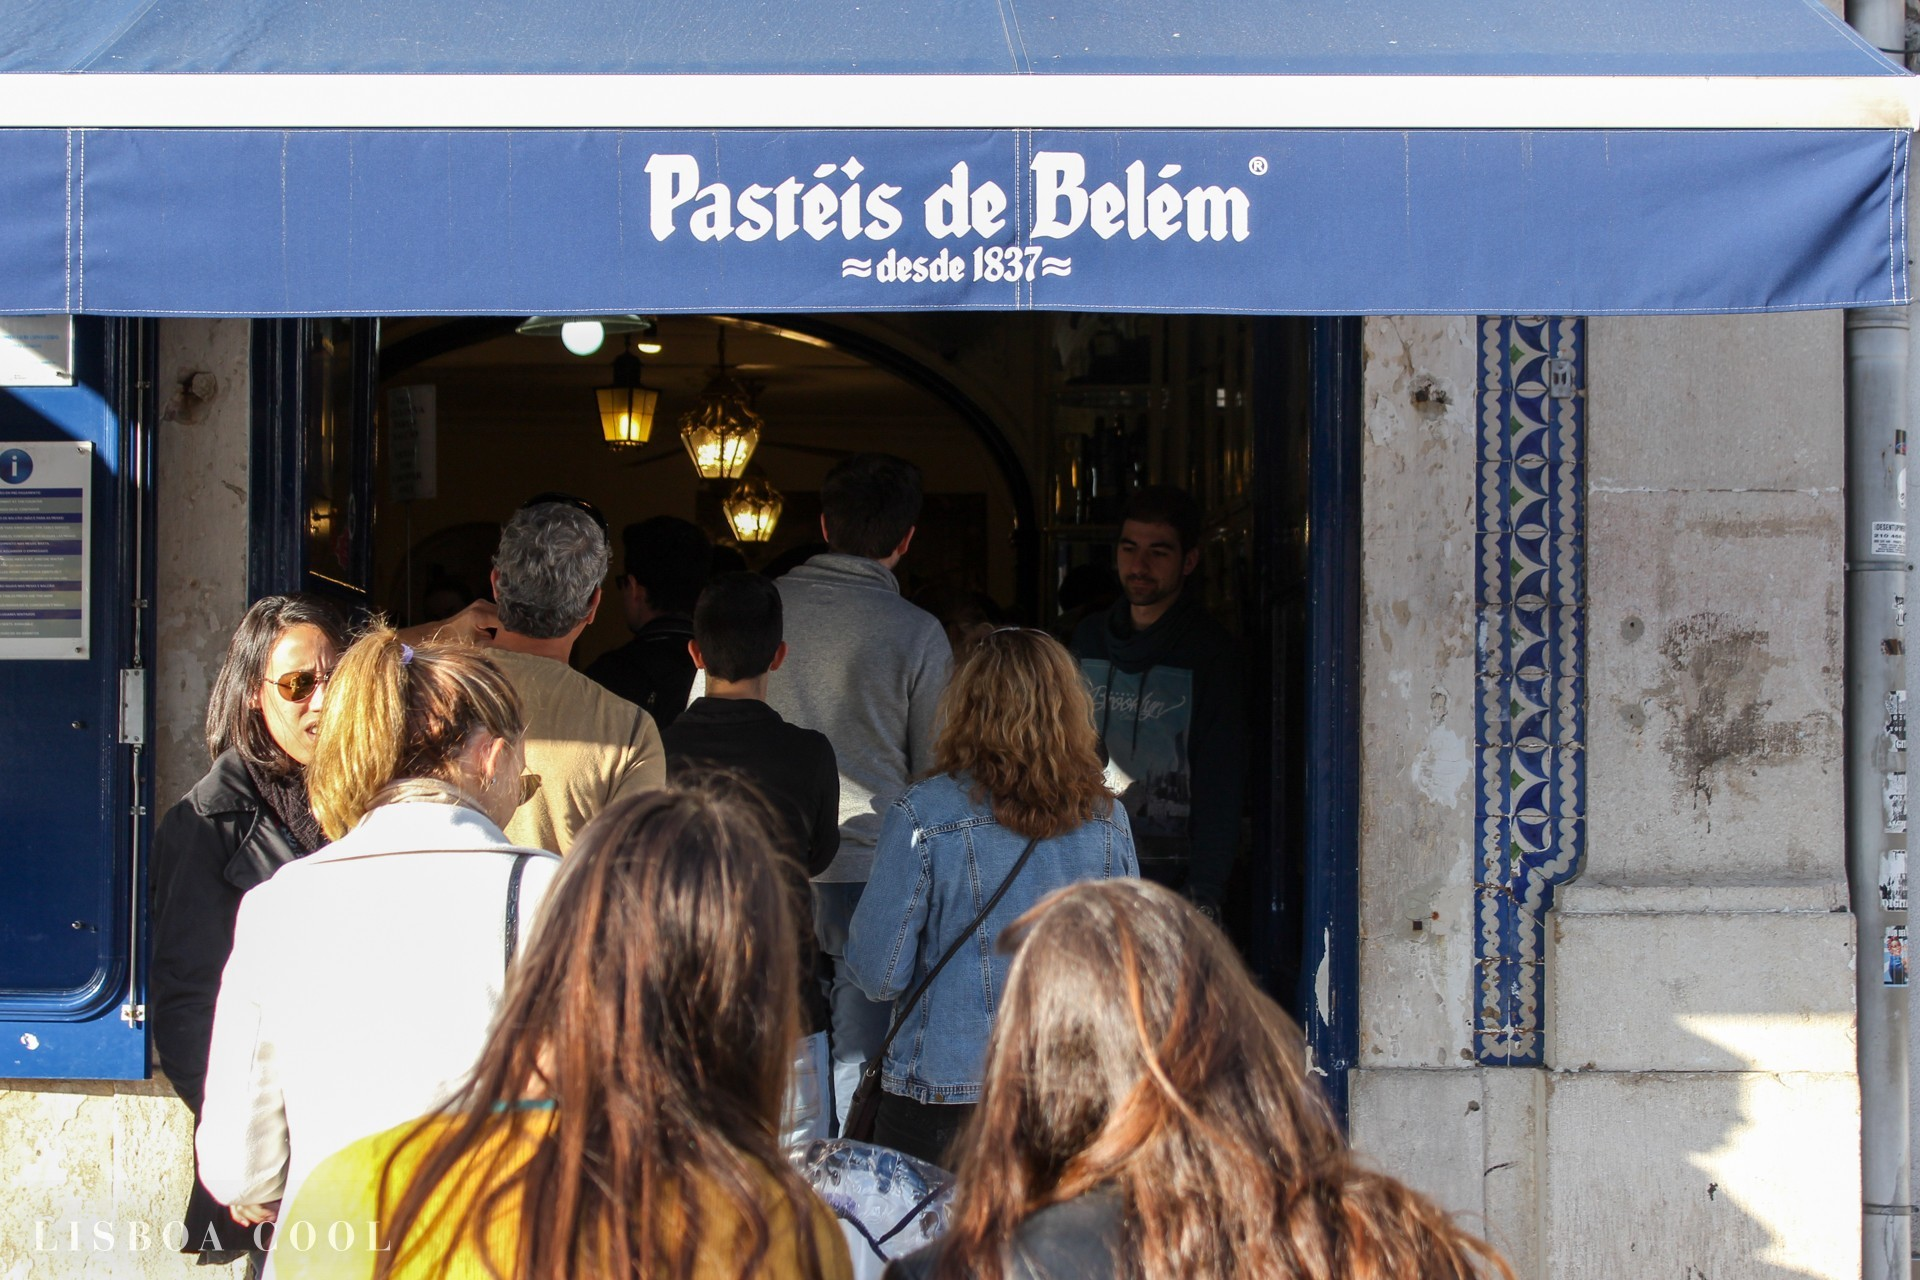 Do you want a Pastel de Nata in Belém?